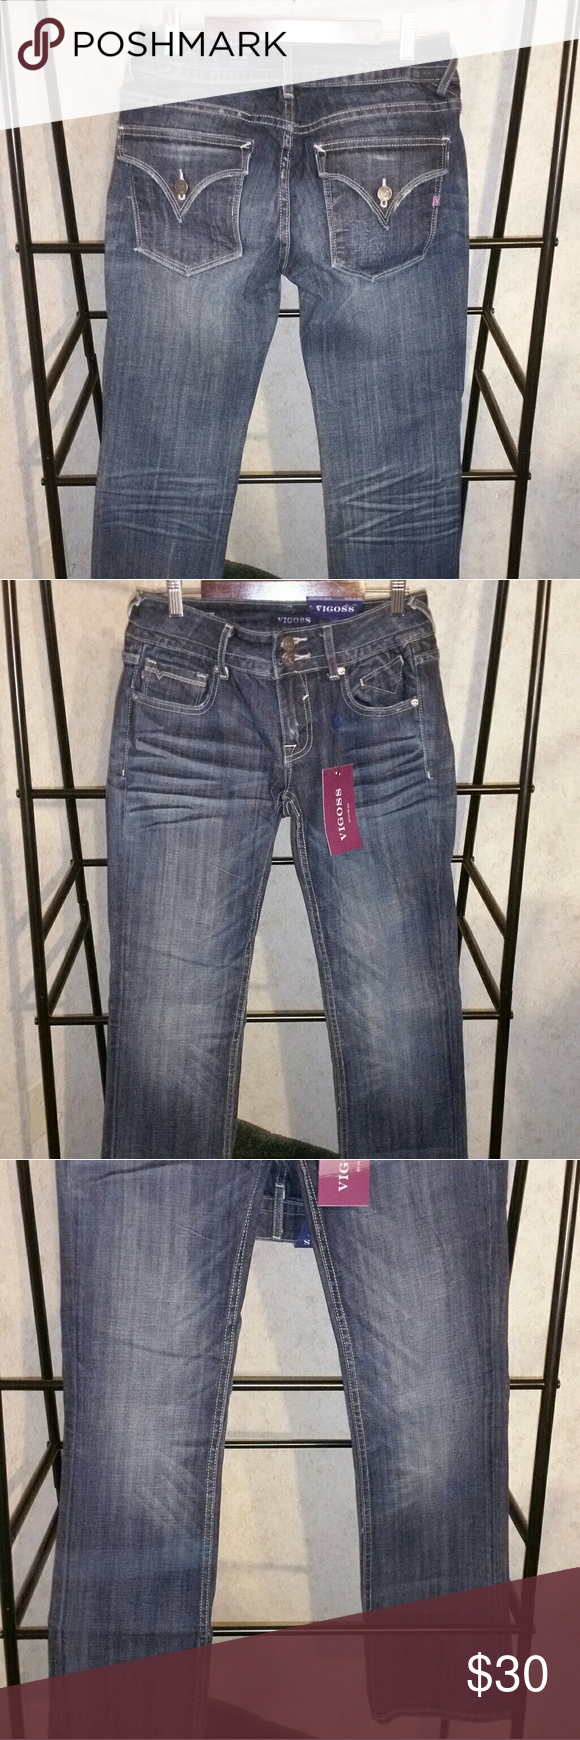 New with tags Vigoss jeans New Vigoss jeans. Love these jeans. Cute v flap pockets. Boot cut. 33in inseam 27w. New with tags. Double button front. Adorable. Vigoss Jeans Boot Cut